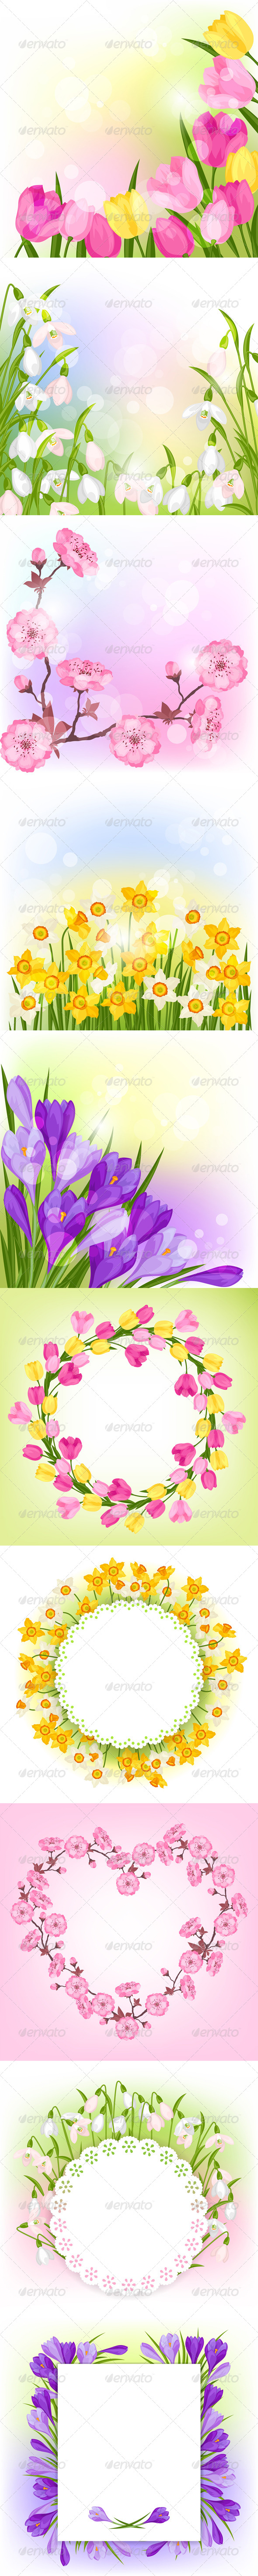 Spring Flowers Natural Backgrounds. - Flowers & Plants Nature